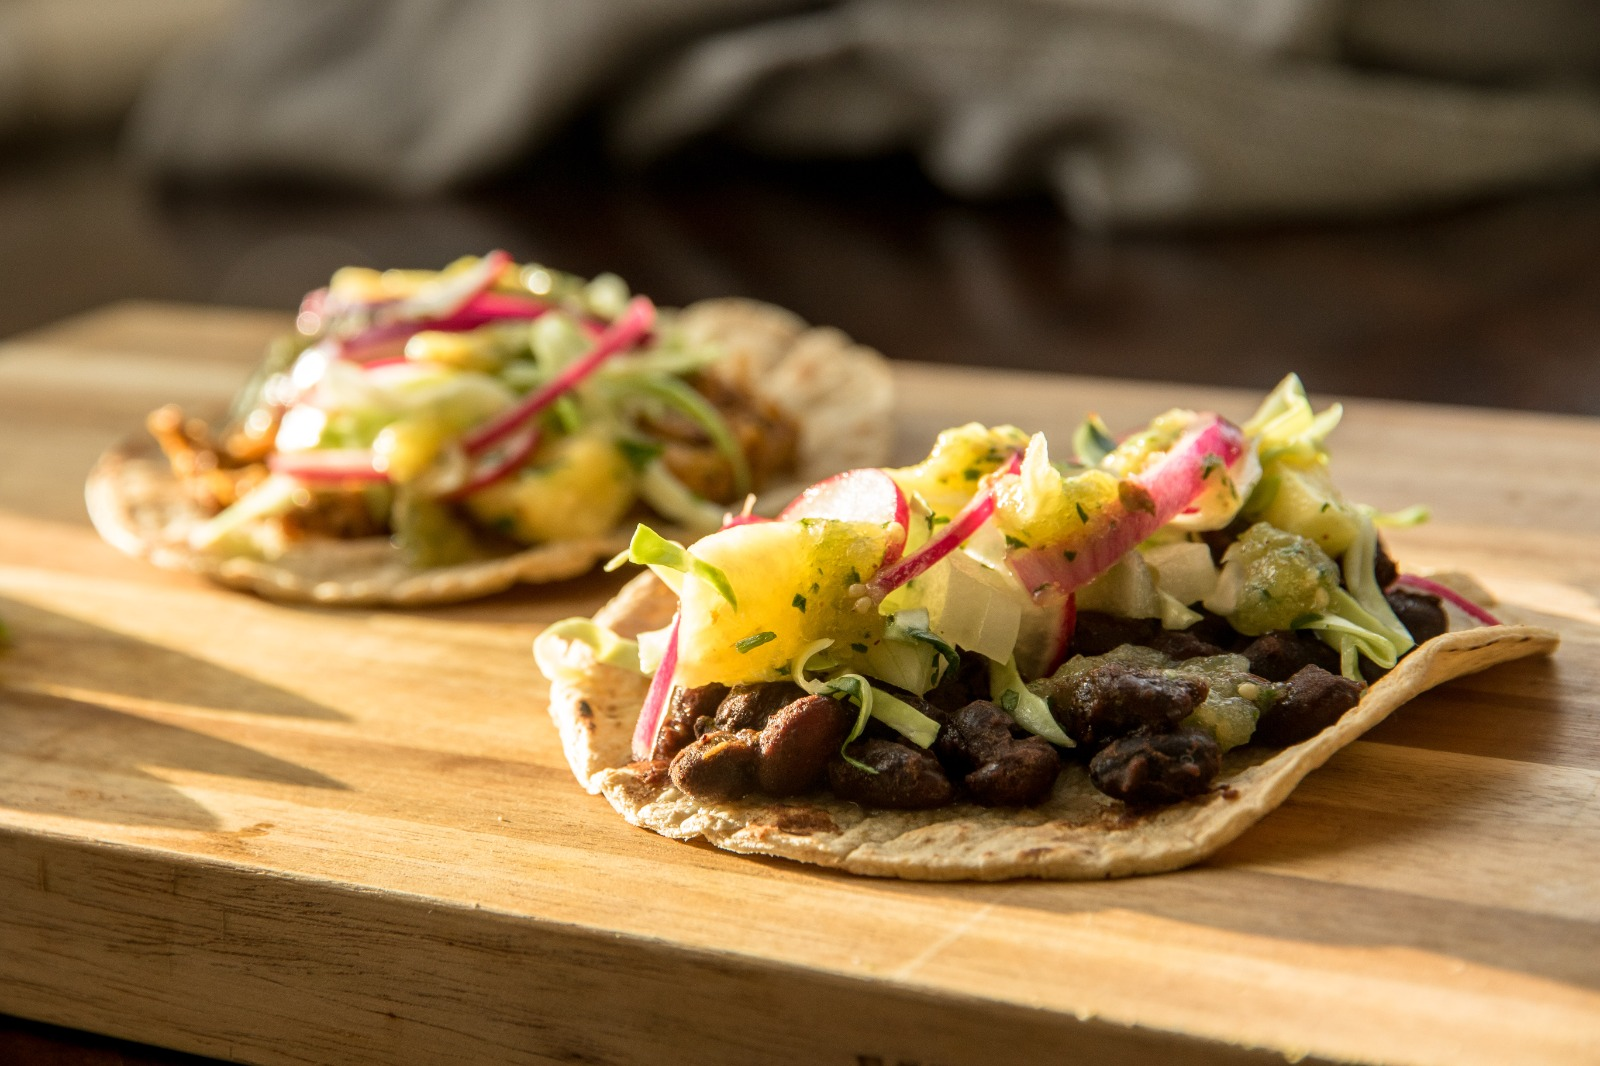 The taco's to be served at the tasting- Business News Scotland